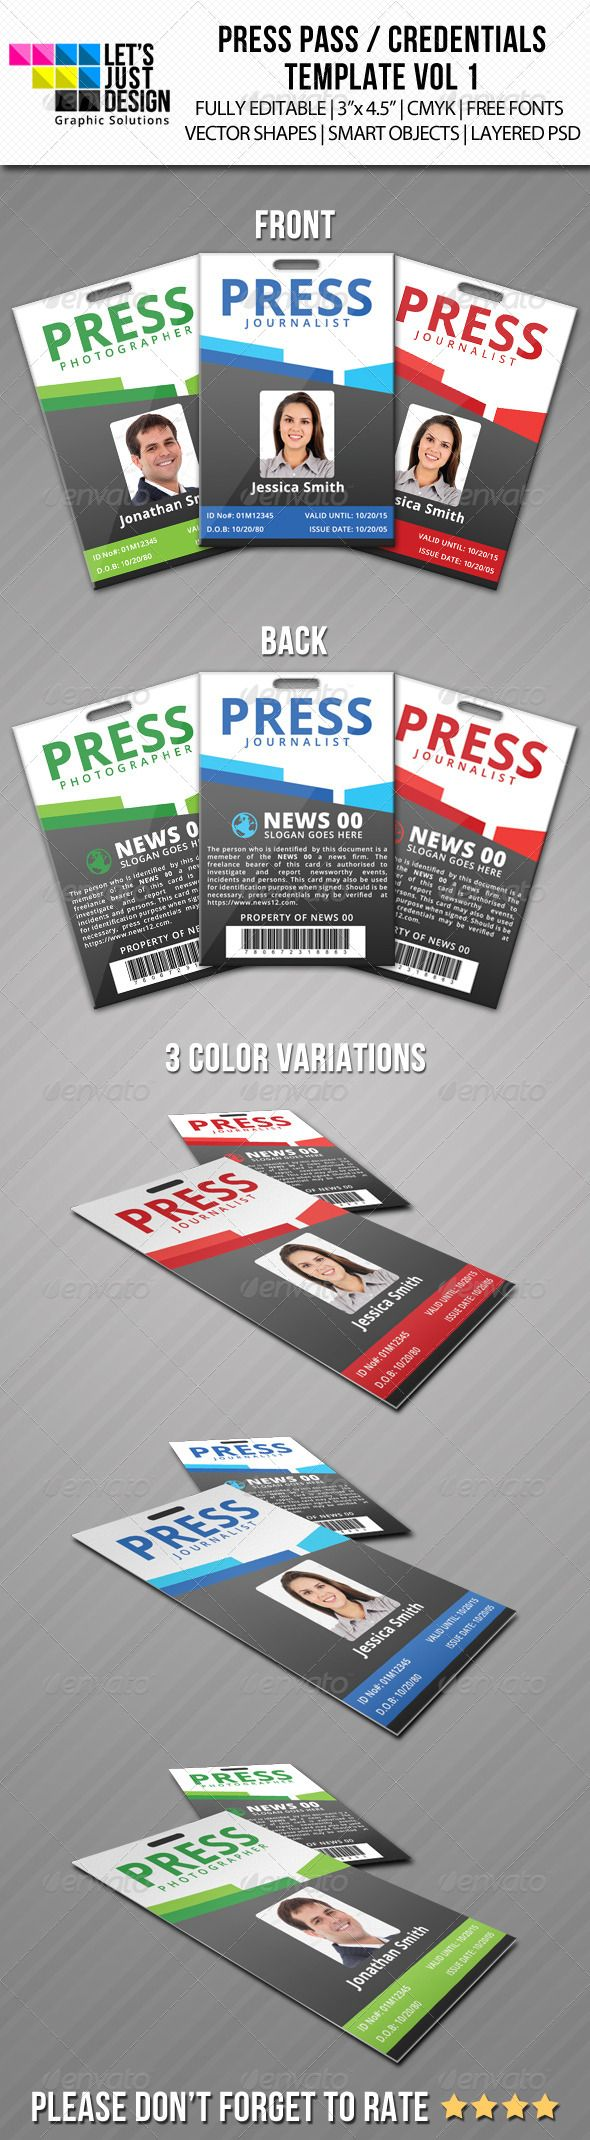 Press Pass / Credentials Template Vol 1 | Tarjetas de identificación ...